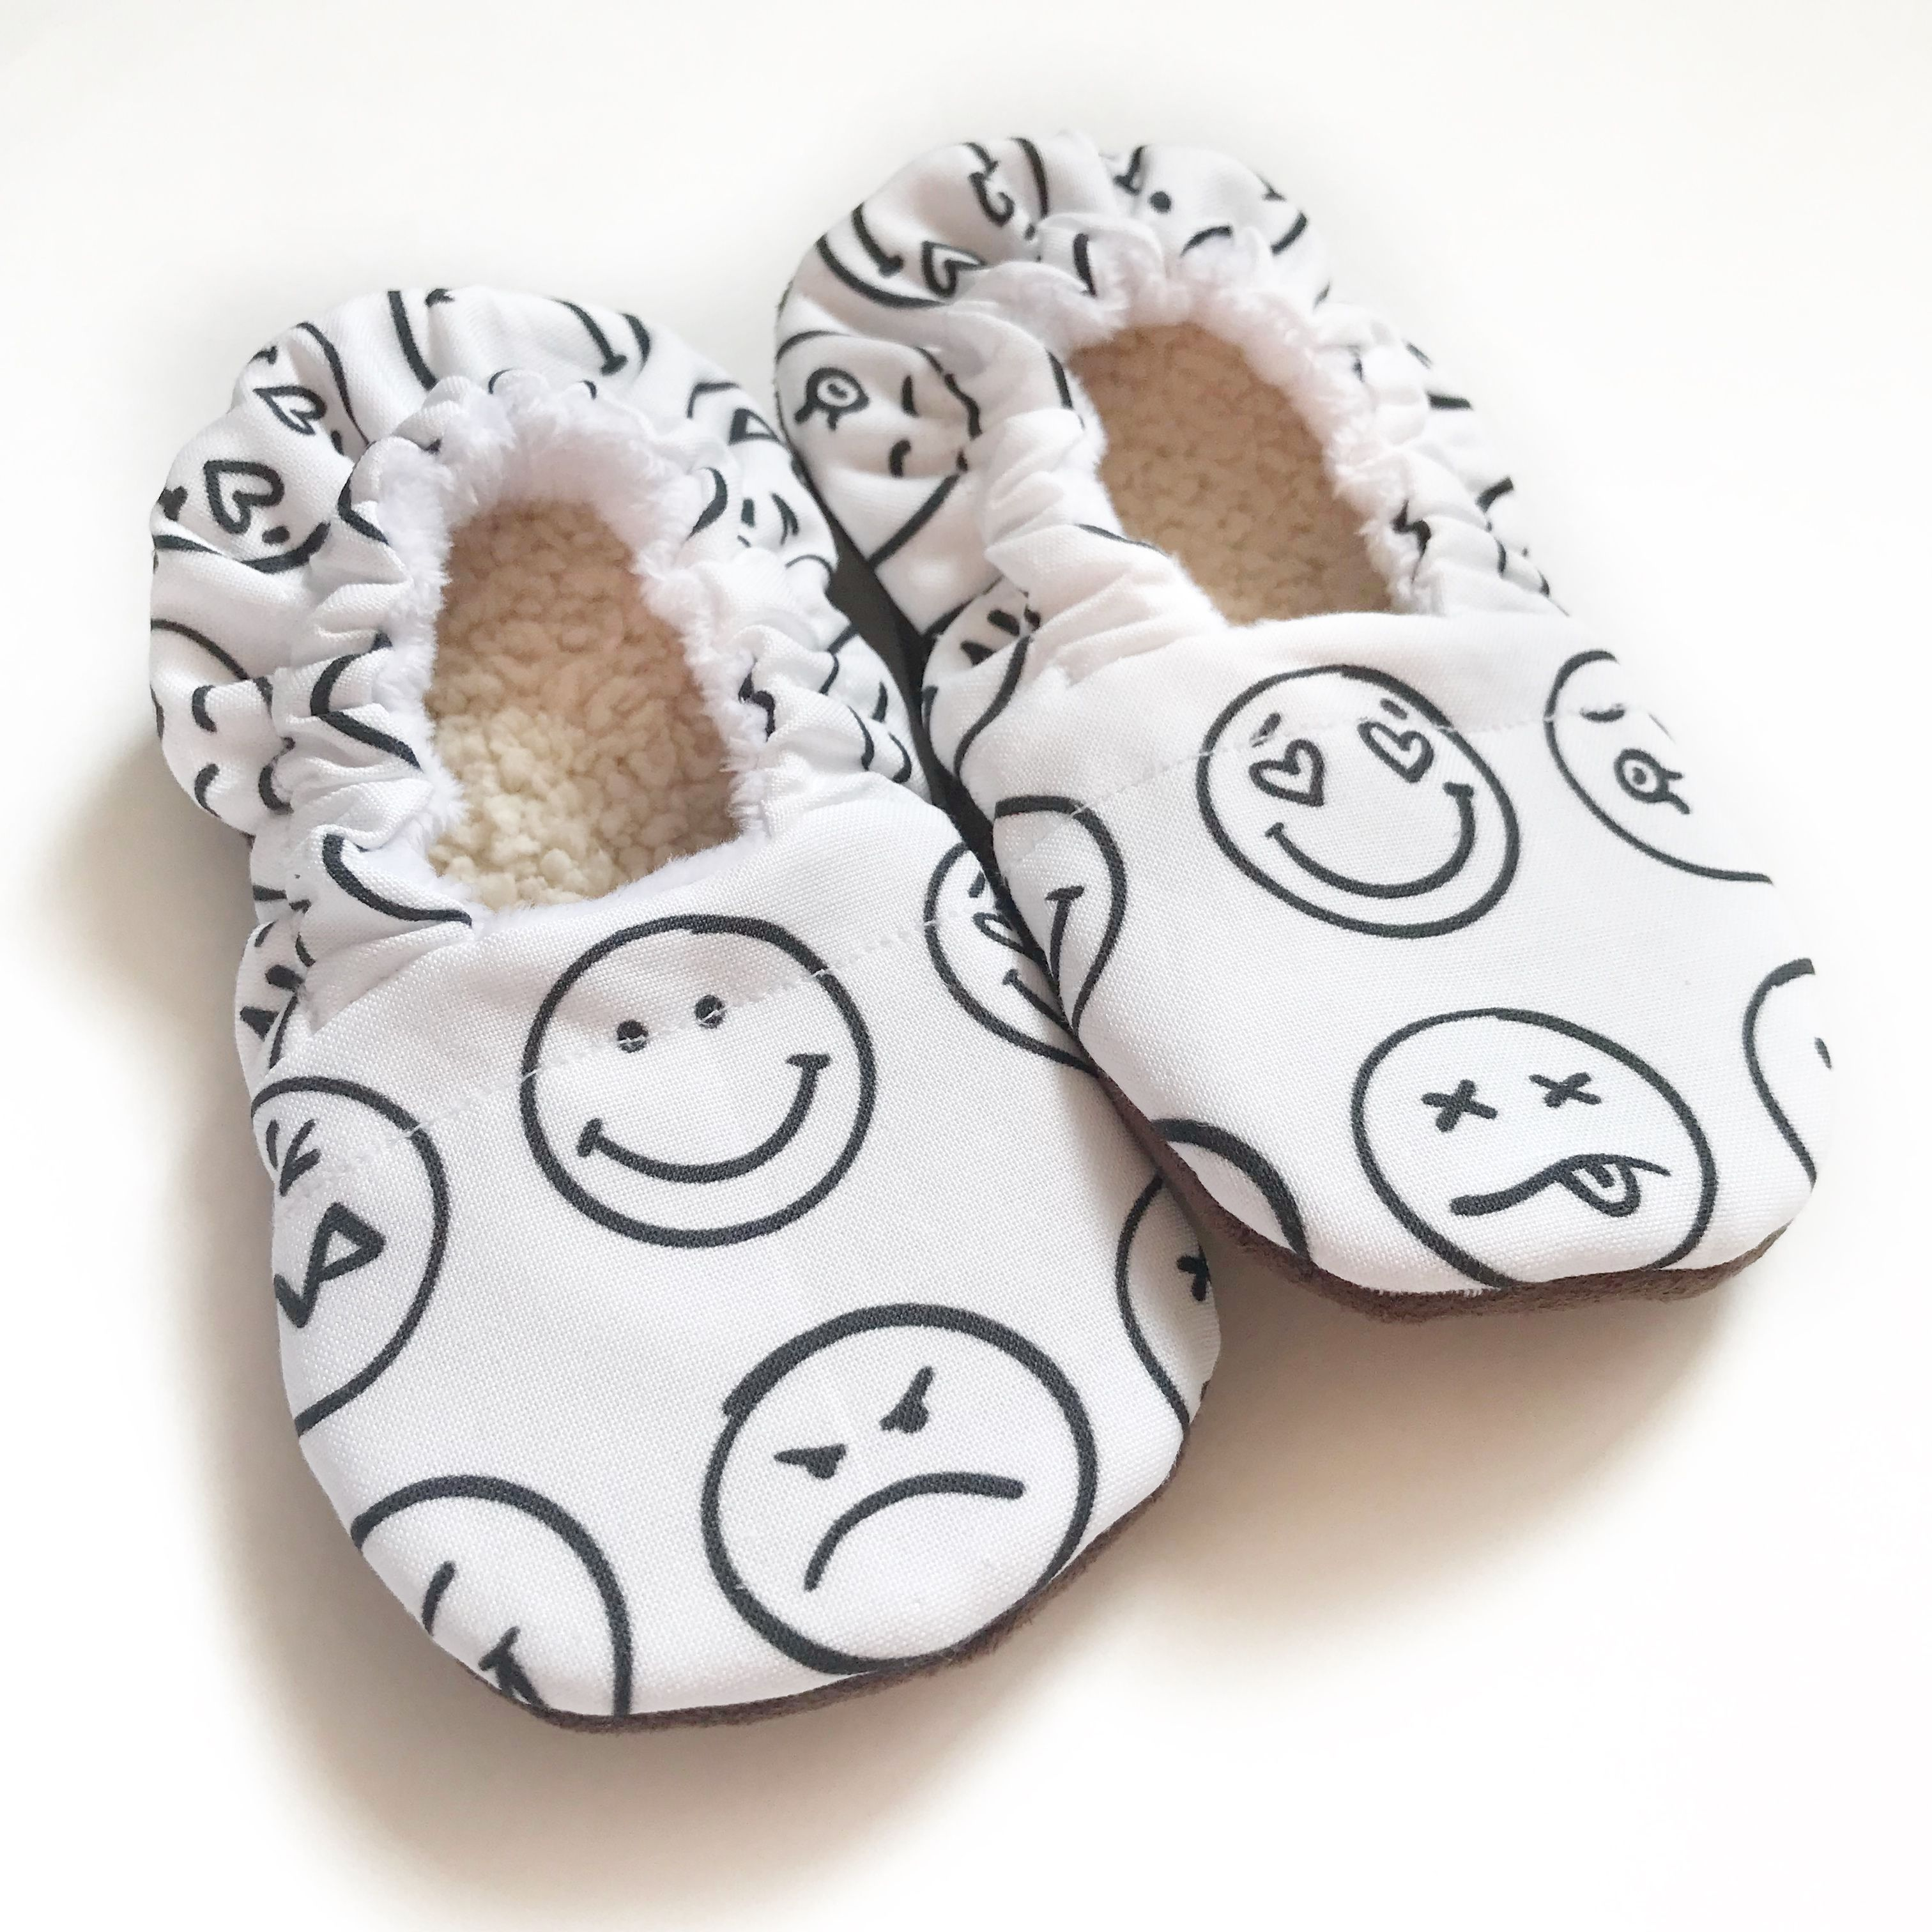 23b436d56ec69 Emoji shoes, toddler shoes, slippers, Christmas gift, baby shower ...